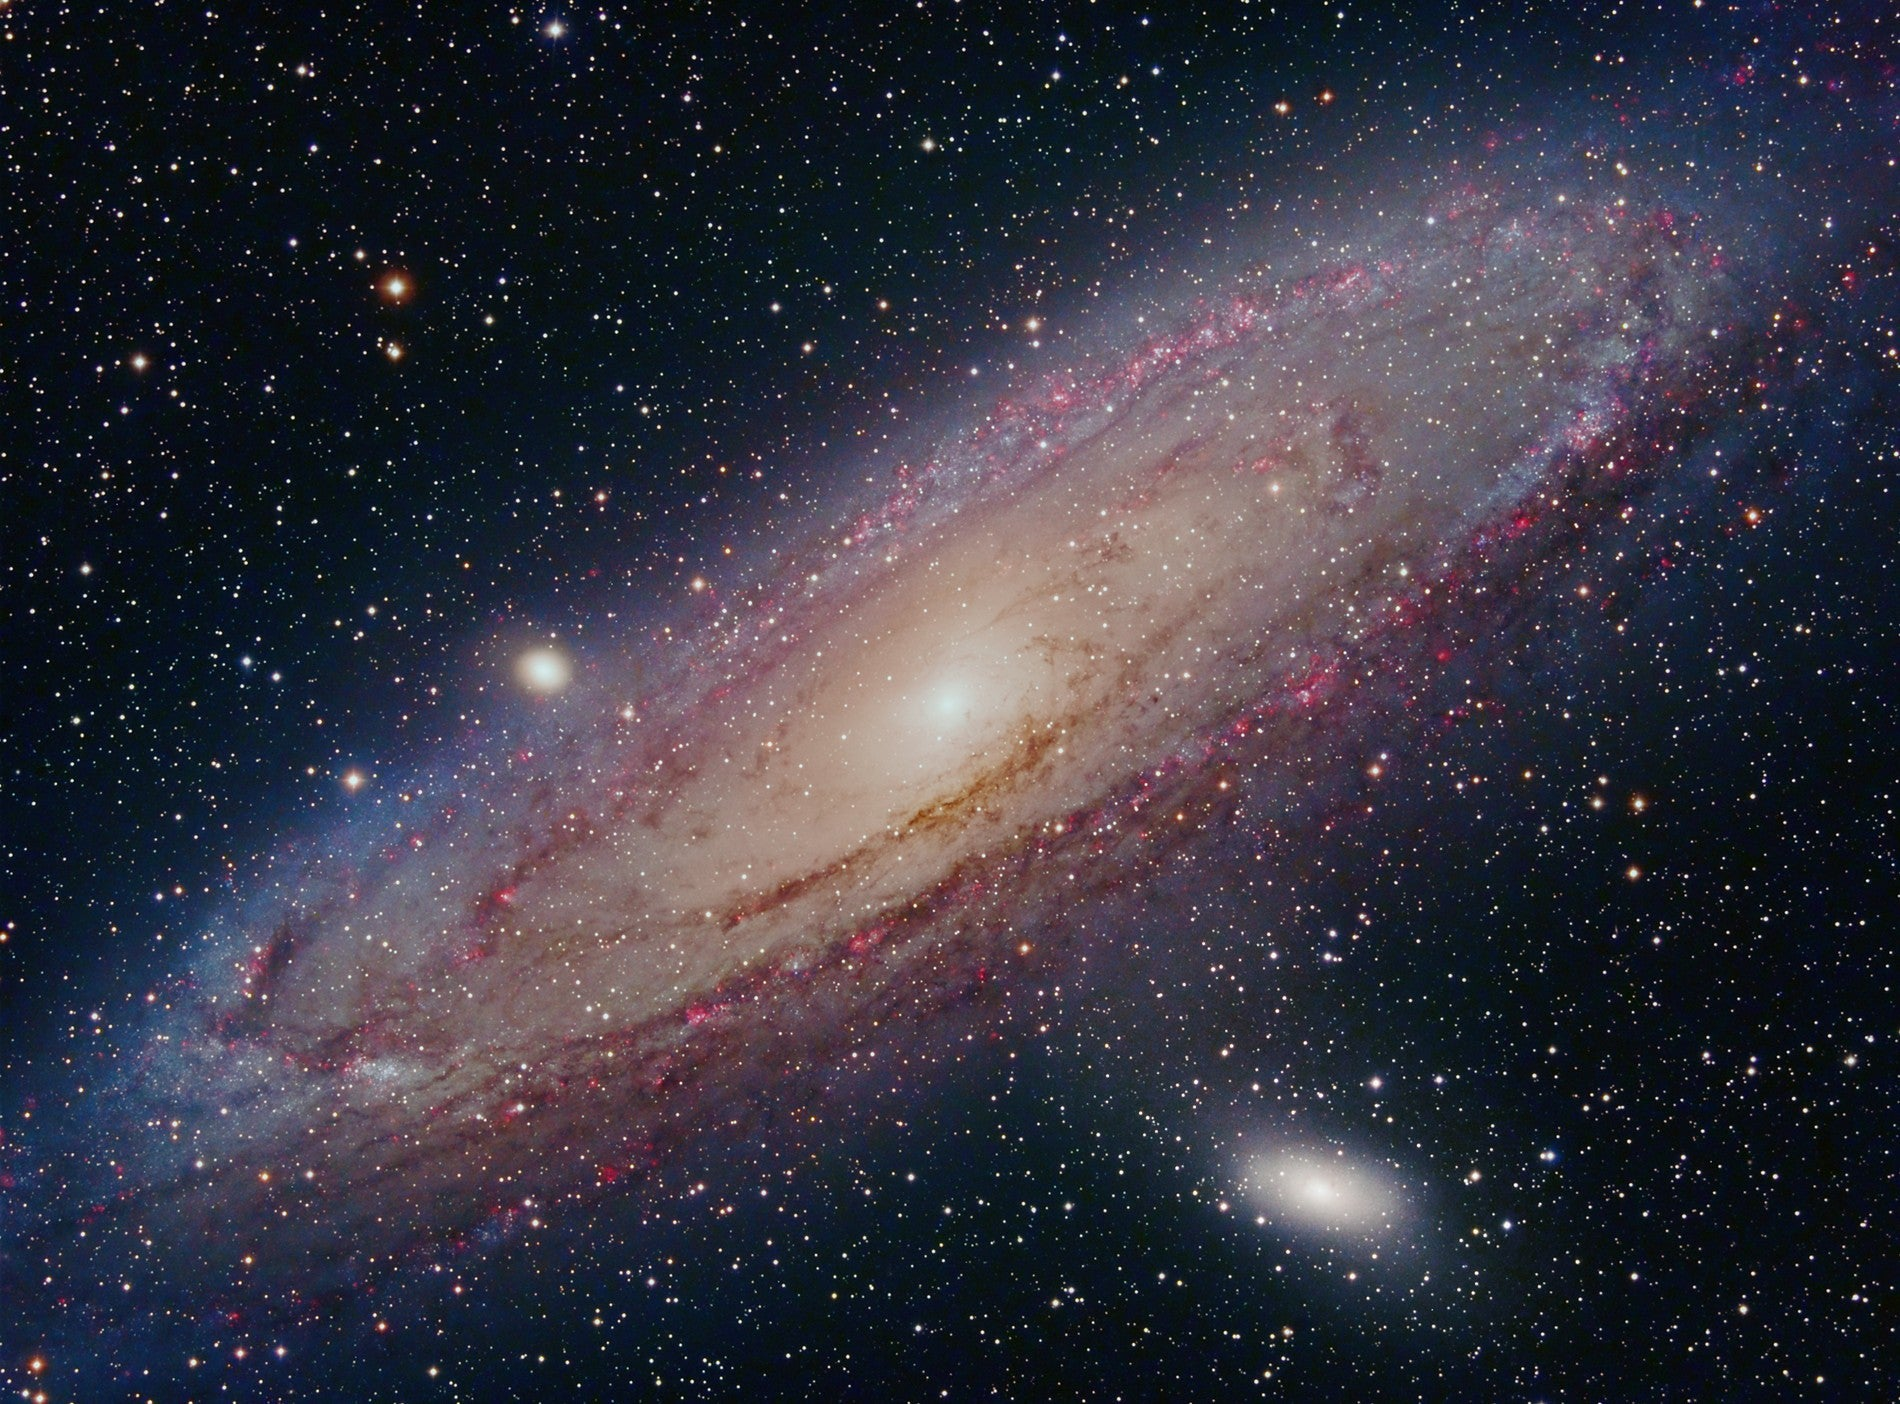 Beautiful image of Andromeda, M31, by Terry Hancock